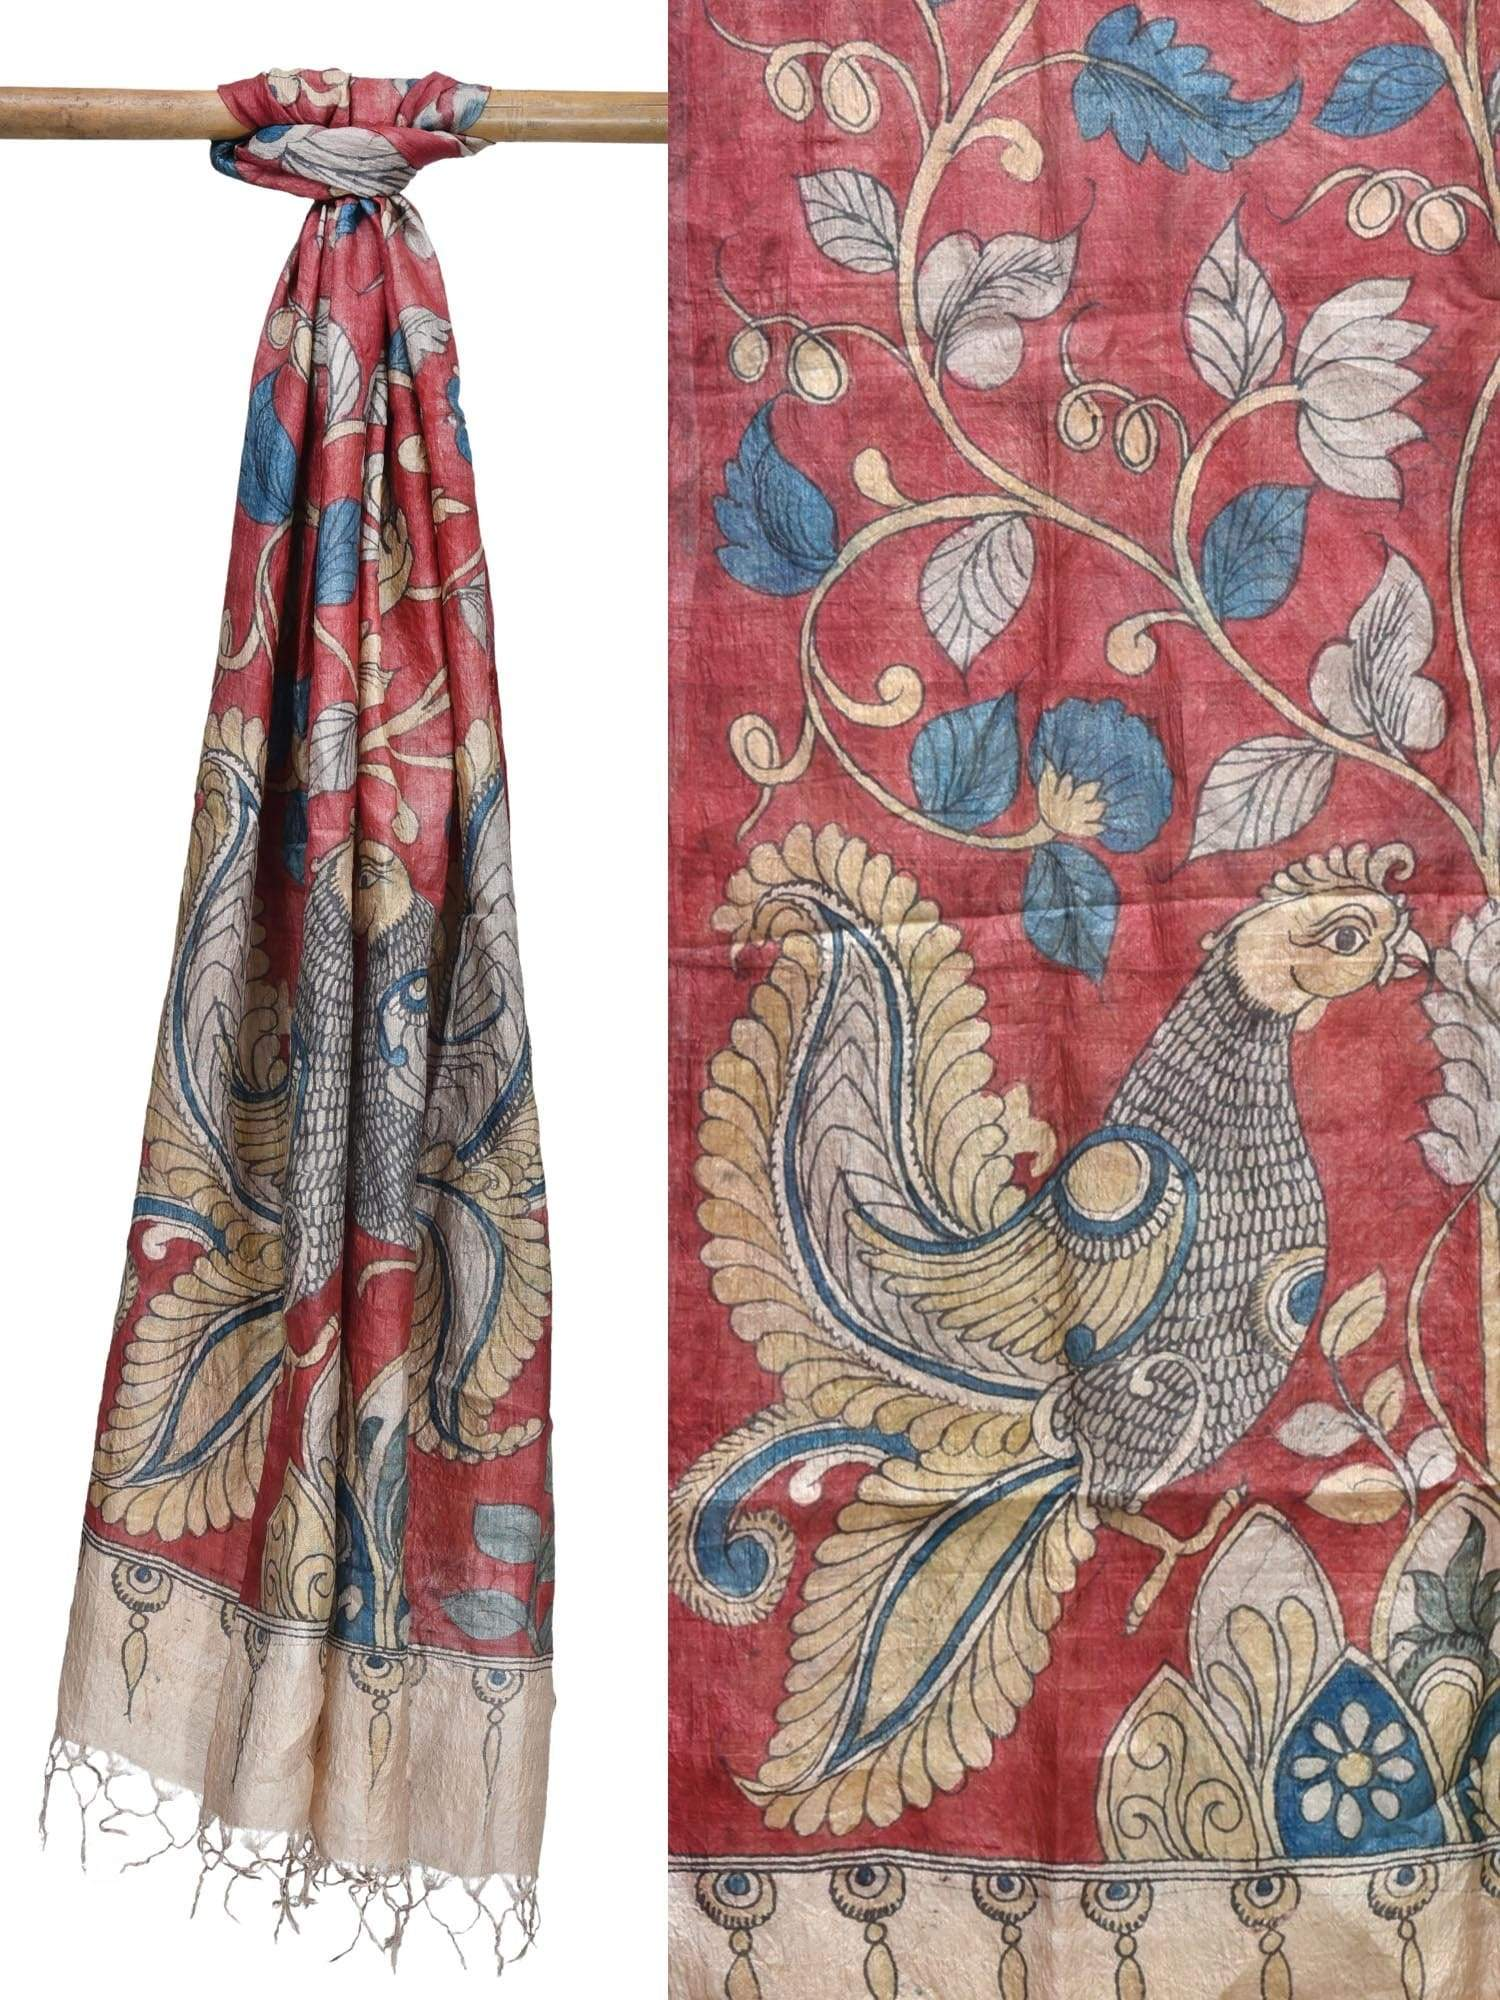 Red Kalamkari Hand Painted Tussar Handloom Dupatta with Peacocks and Flowers Design ds1790